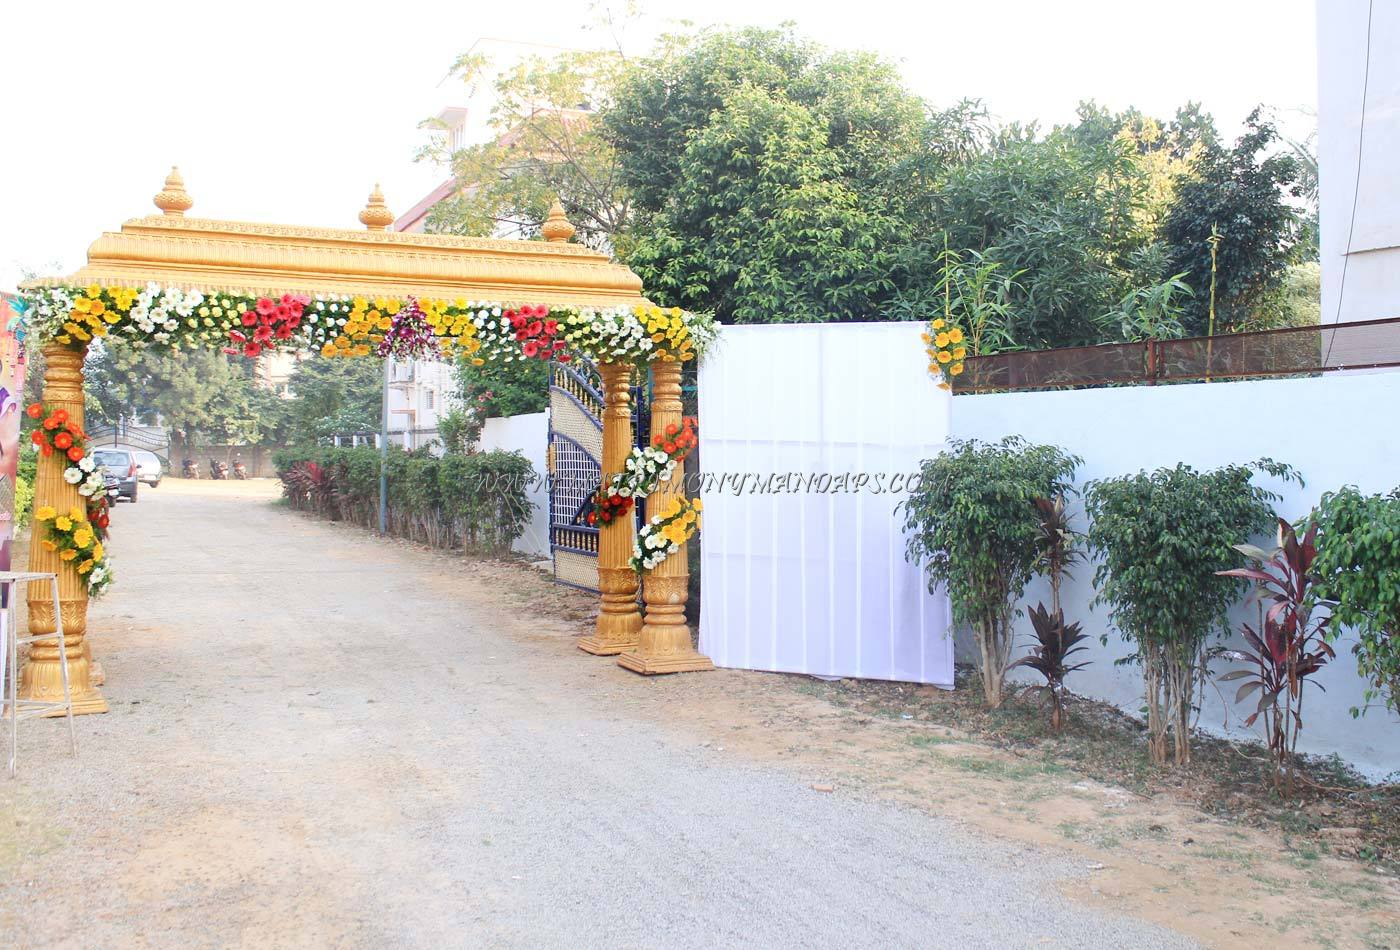 Find the availability of the Yerra Lalitha Garden Function Hall in Kapra, Hyderabad and avail special offers